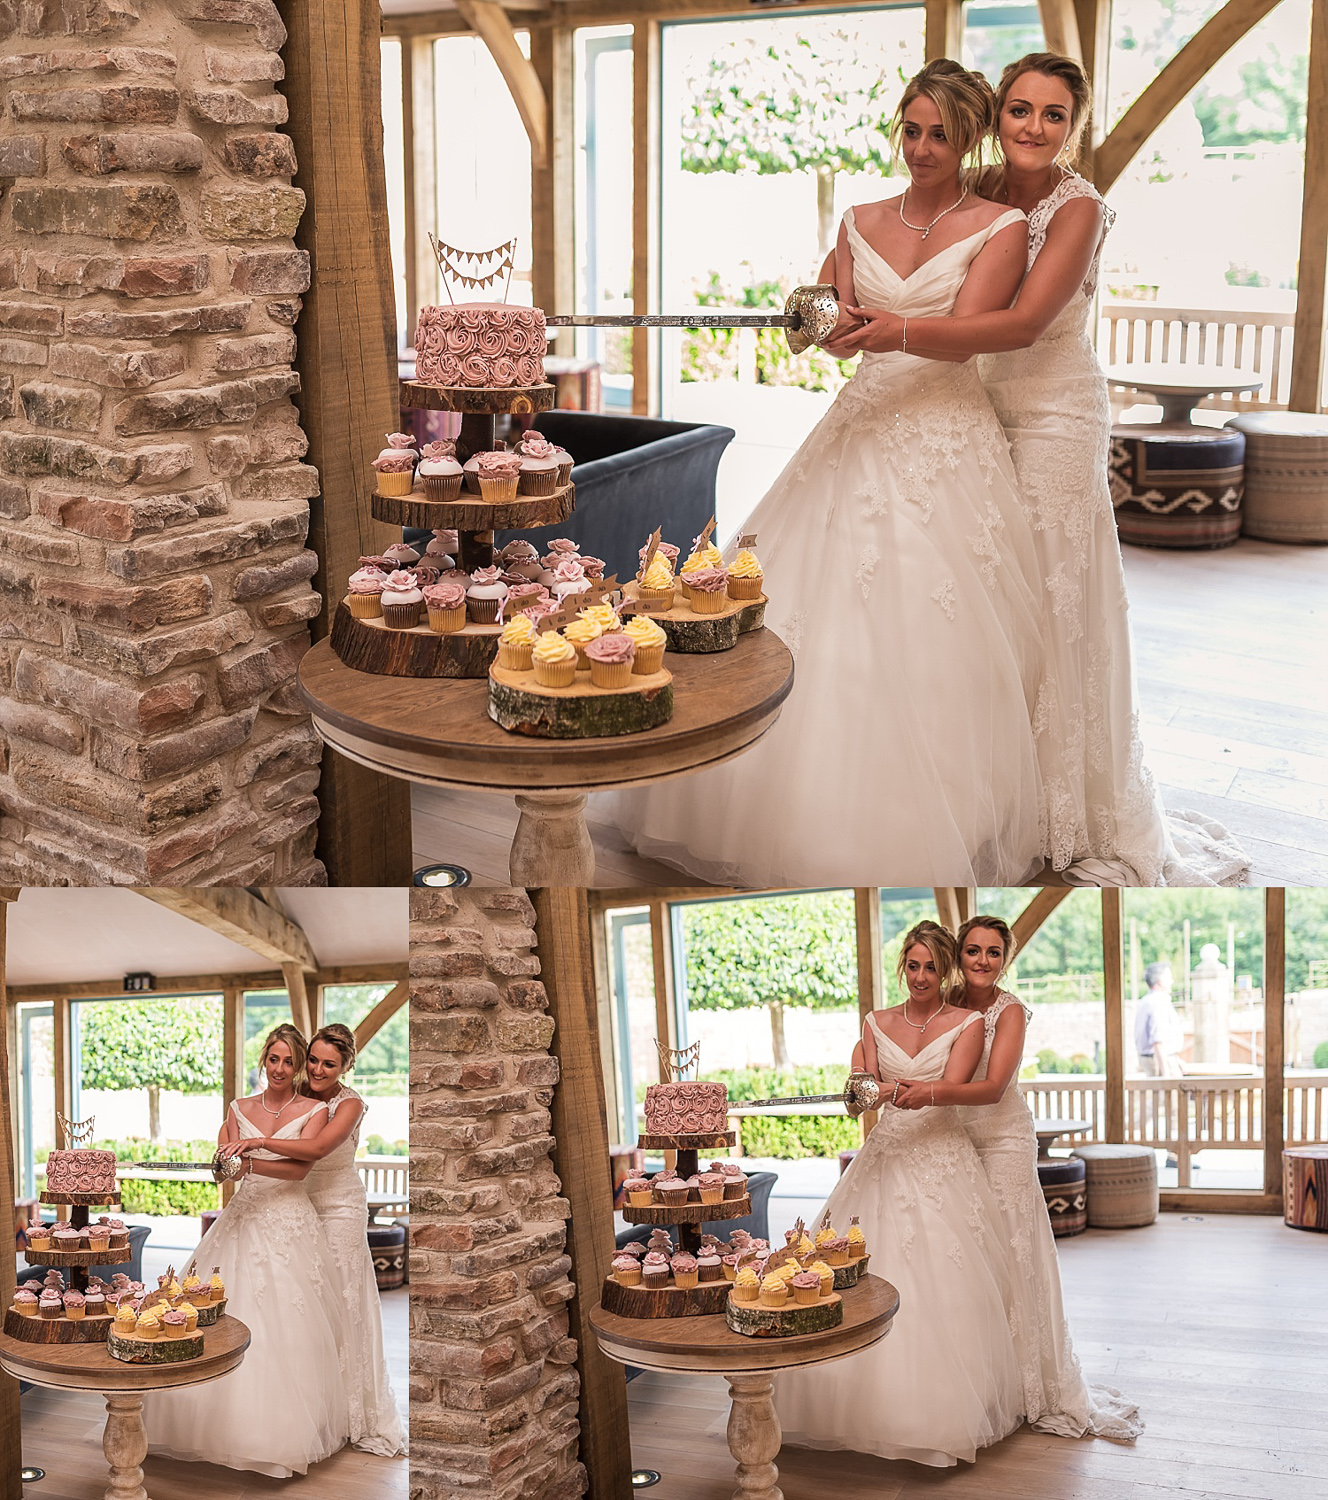 Brides cut cake at LGBT wedding